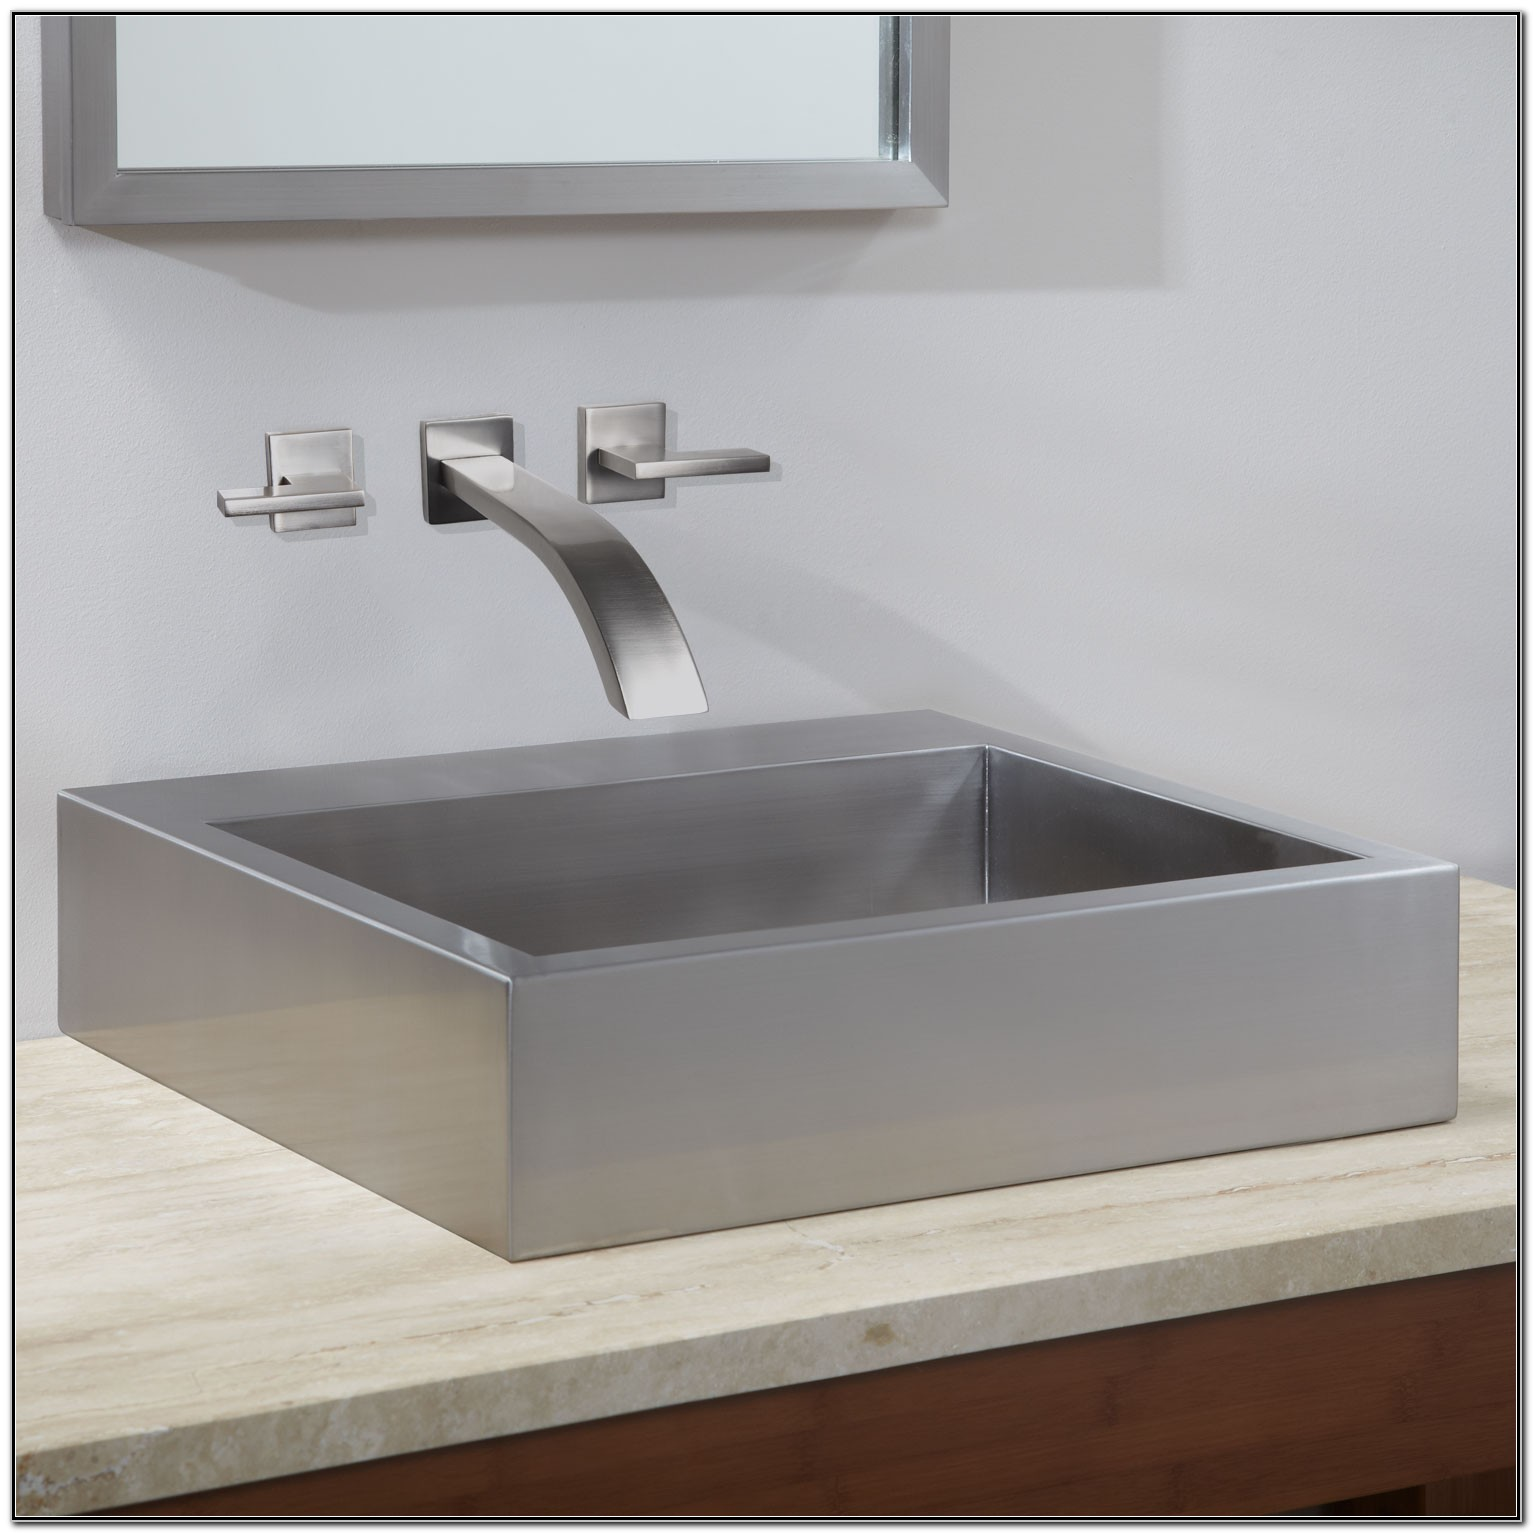 Square Stainless Steel Bathroom Sink